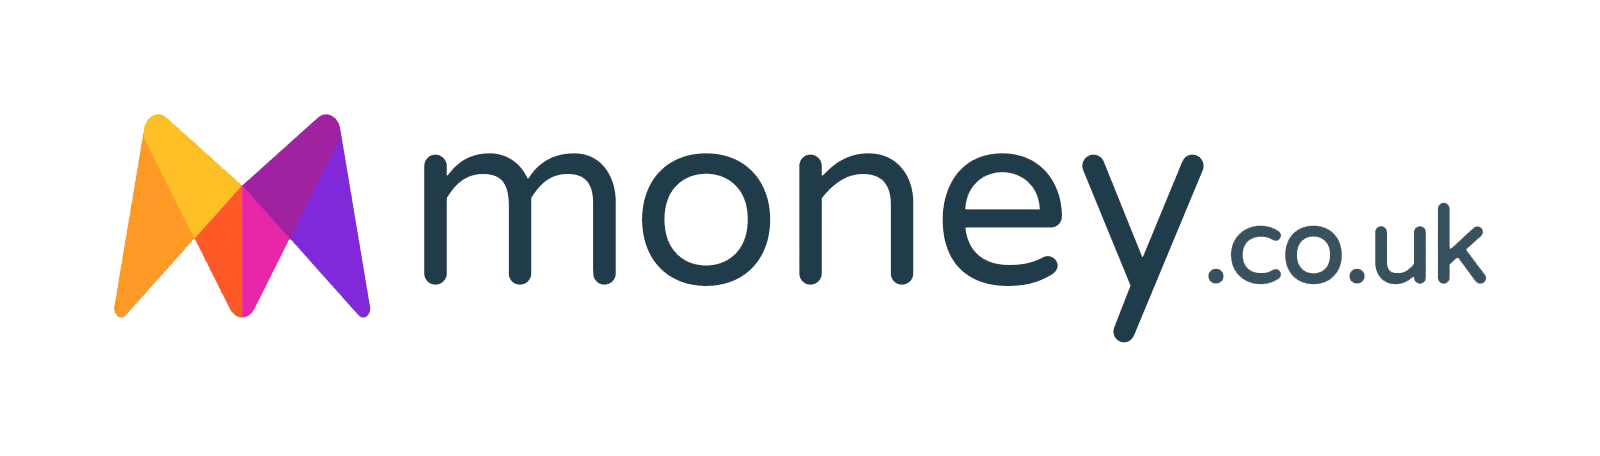 Money.co.uk